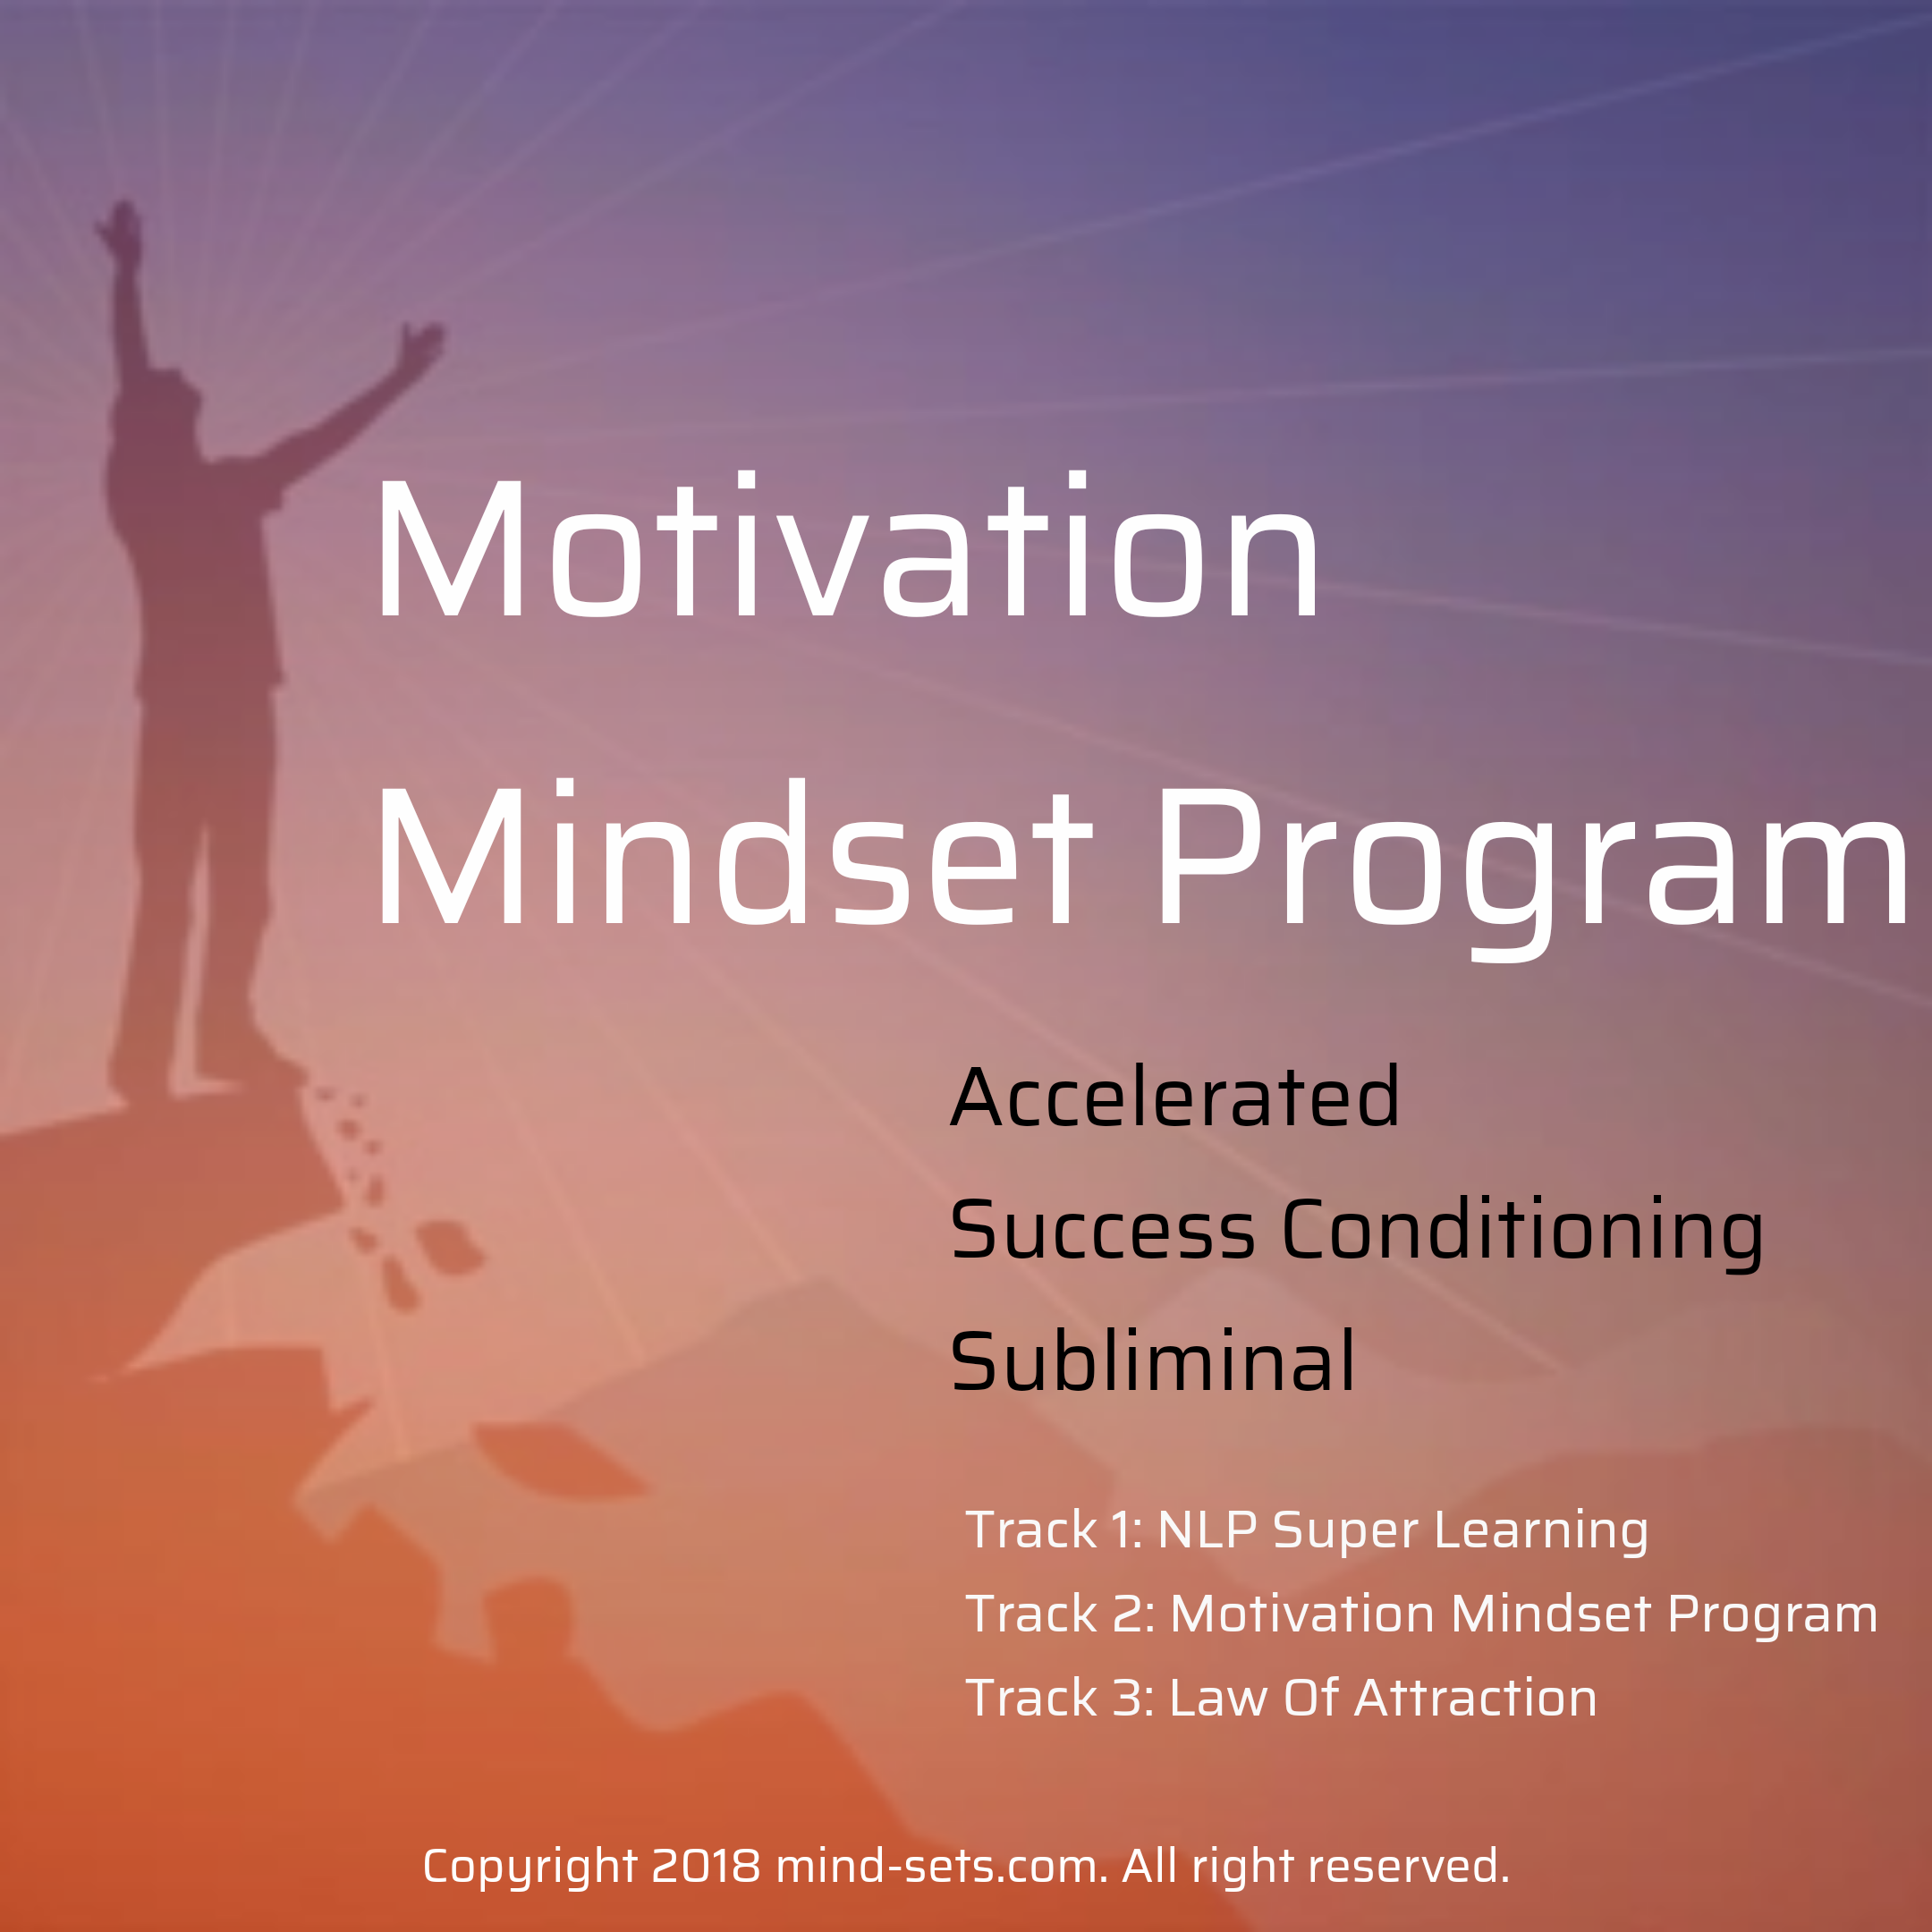 Motivation Mindset Program